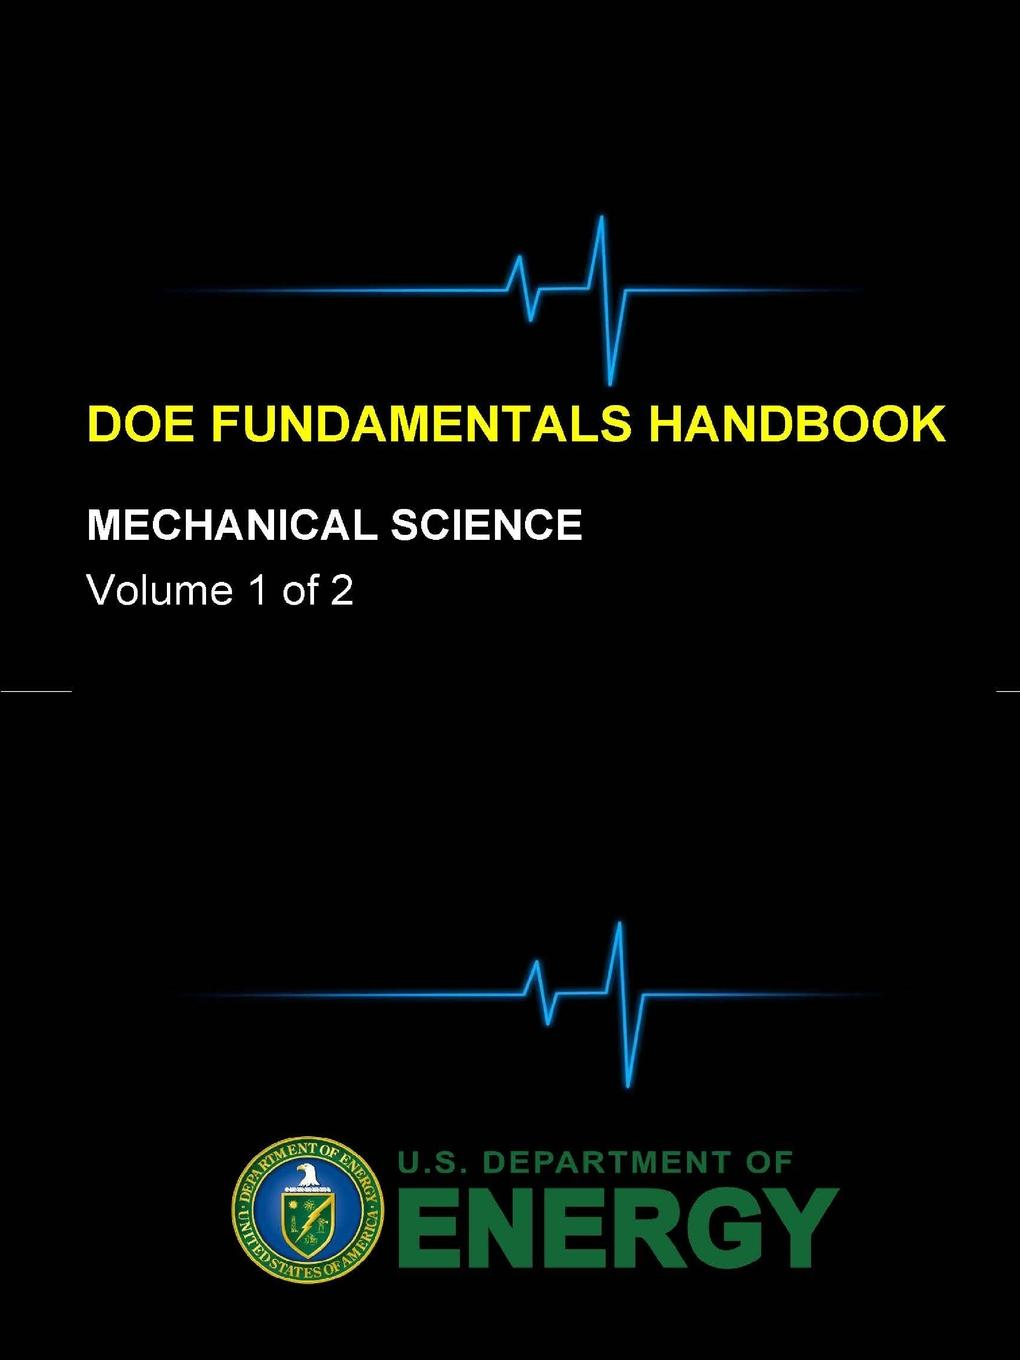 U.S. Department of Energy DOE Fundamentals Handbook - Mechanical Science (Volume 1 of 2) myer kutz mechanical engineers handbook volume 2 design instrumentation and controls